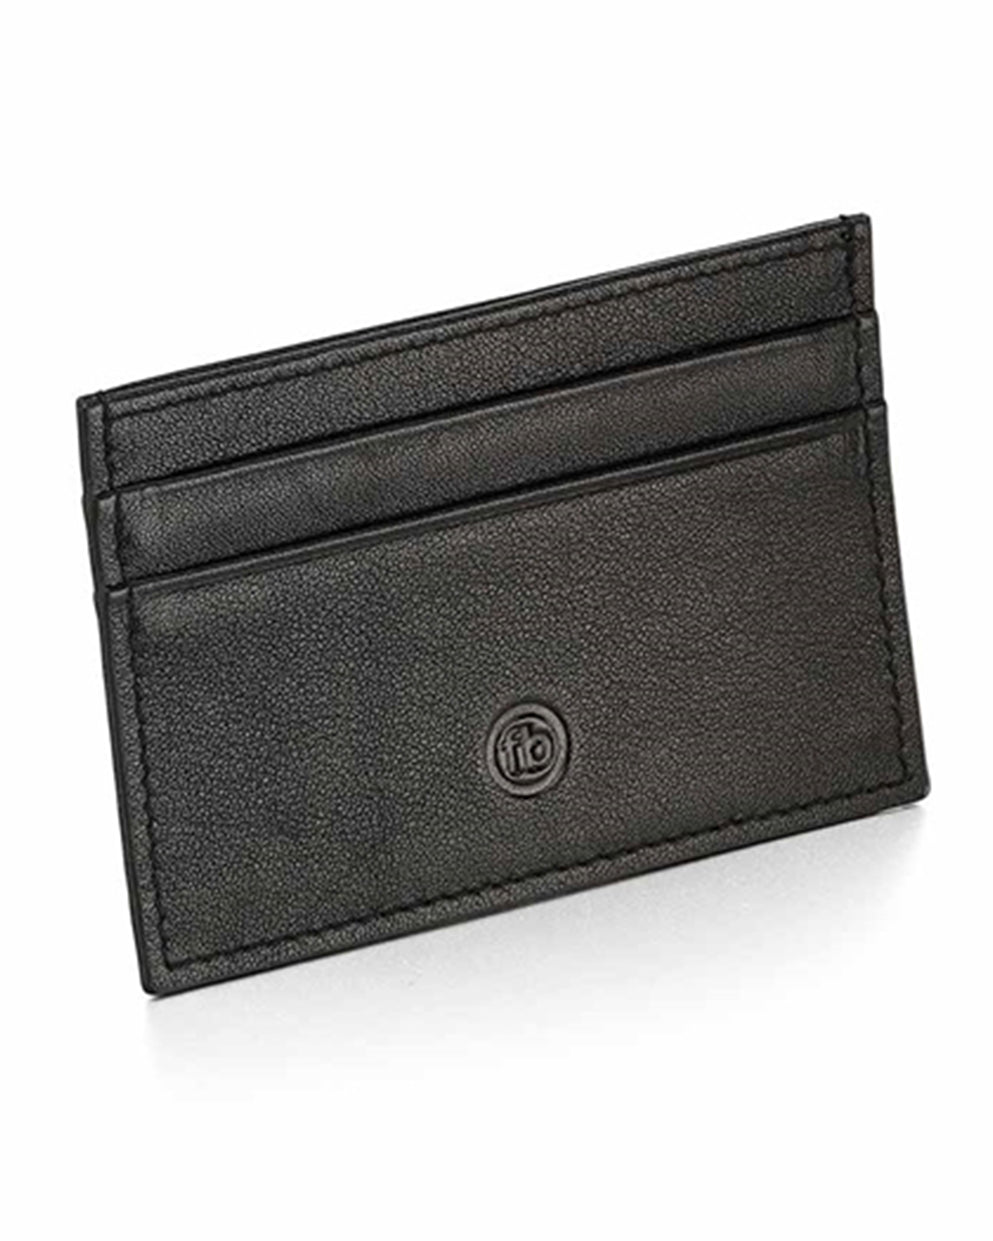 Fred Bennett Black Leather Card Holder